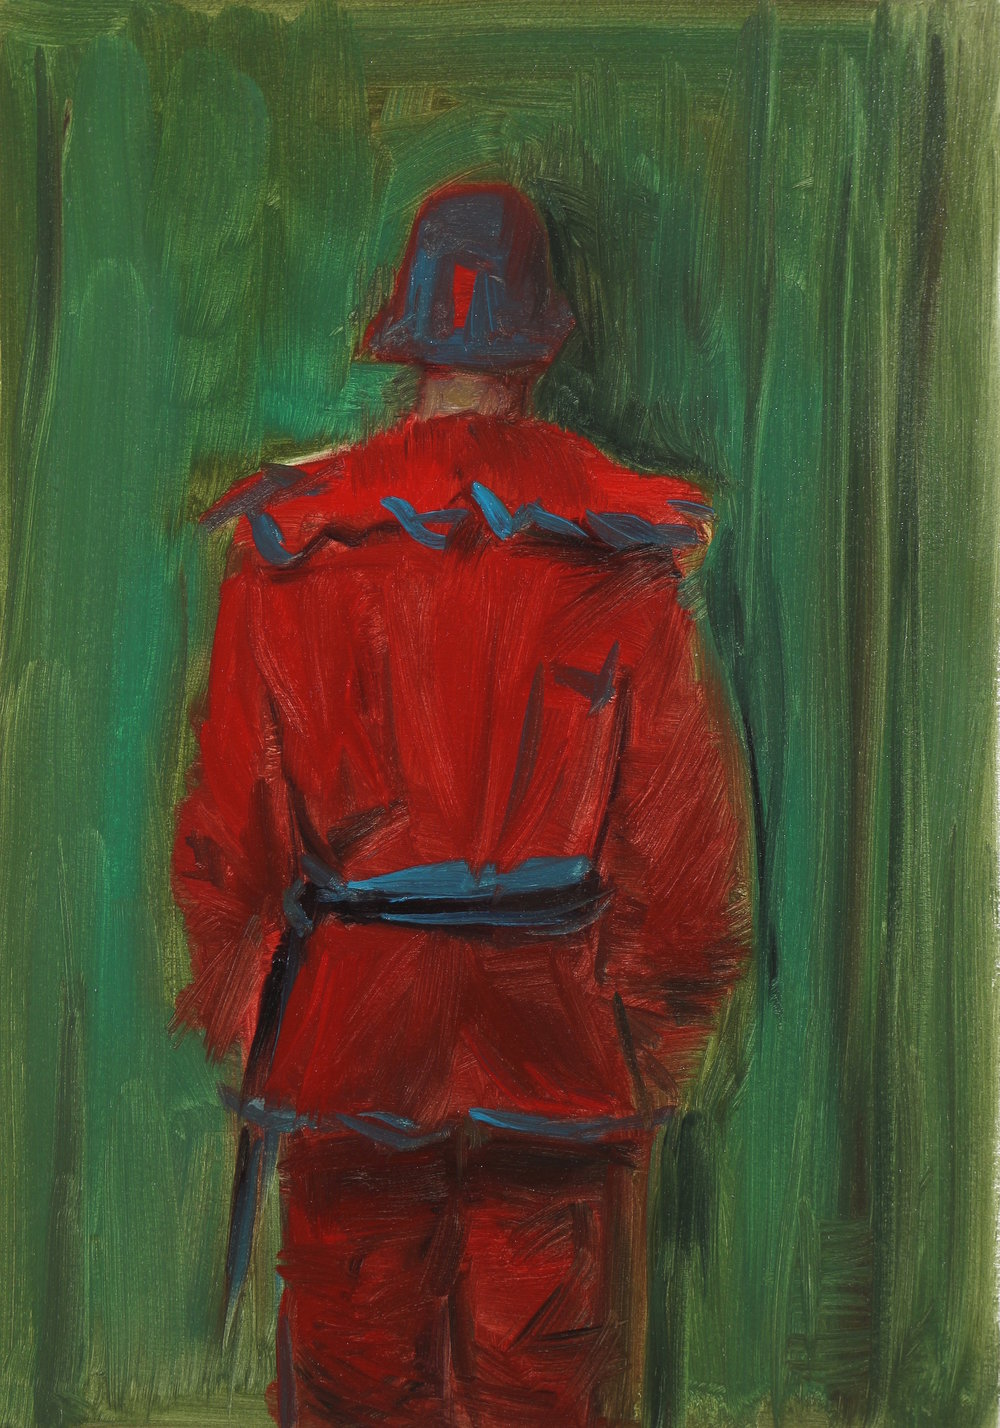 The Understudy, Oil on paper, 34x24cm, 2016